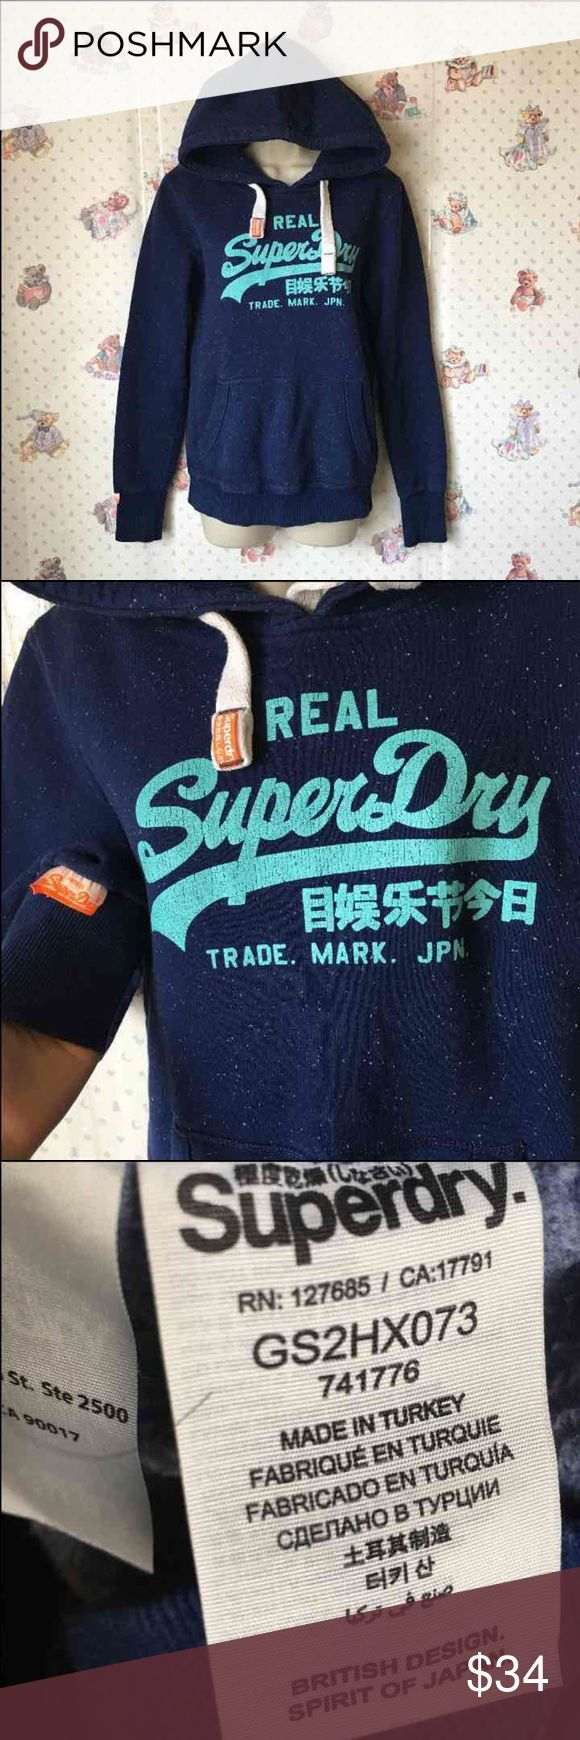 SuperDry vintage pullover SuperDry vintage pullover.  Size medium. Runs smaller. Recommend small. (Women) 83% cotton 17% polyester  Vintage pullover from SuperDry.  The words are made that way for a vintage look and this will come as shown. The white dots were there since I purchased them. Not flaws. Superdry Tops Sweatshirts & Hoodies